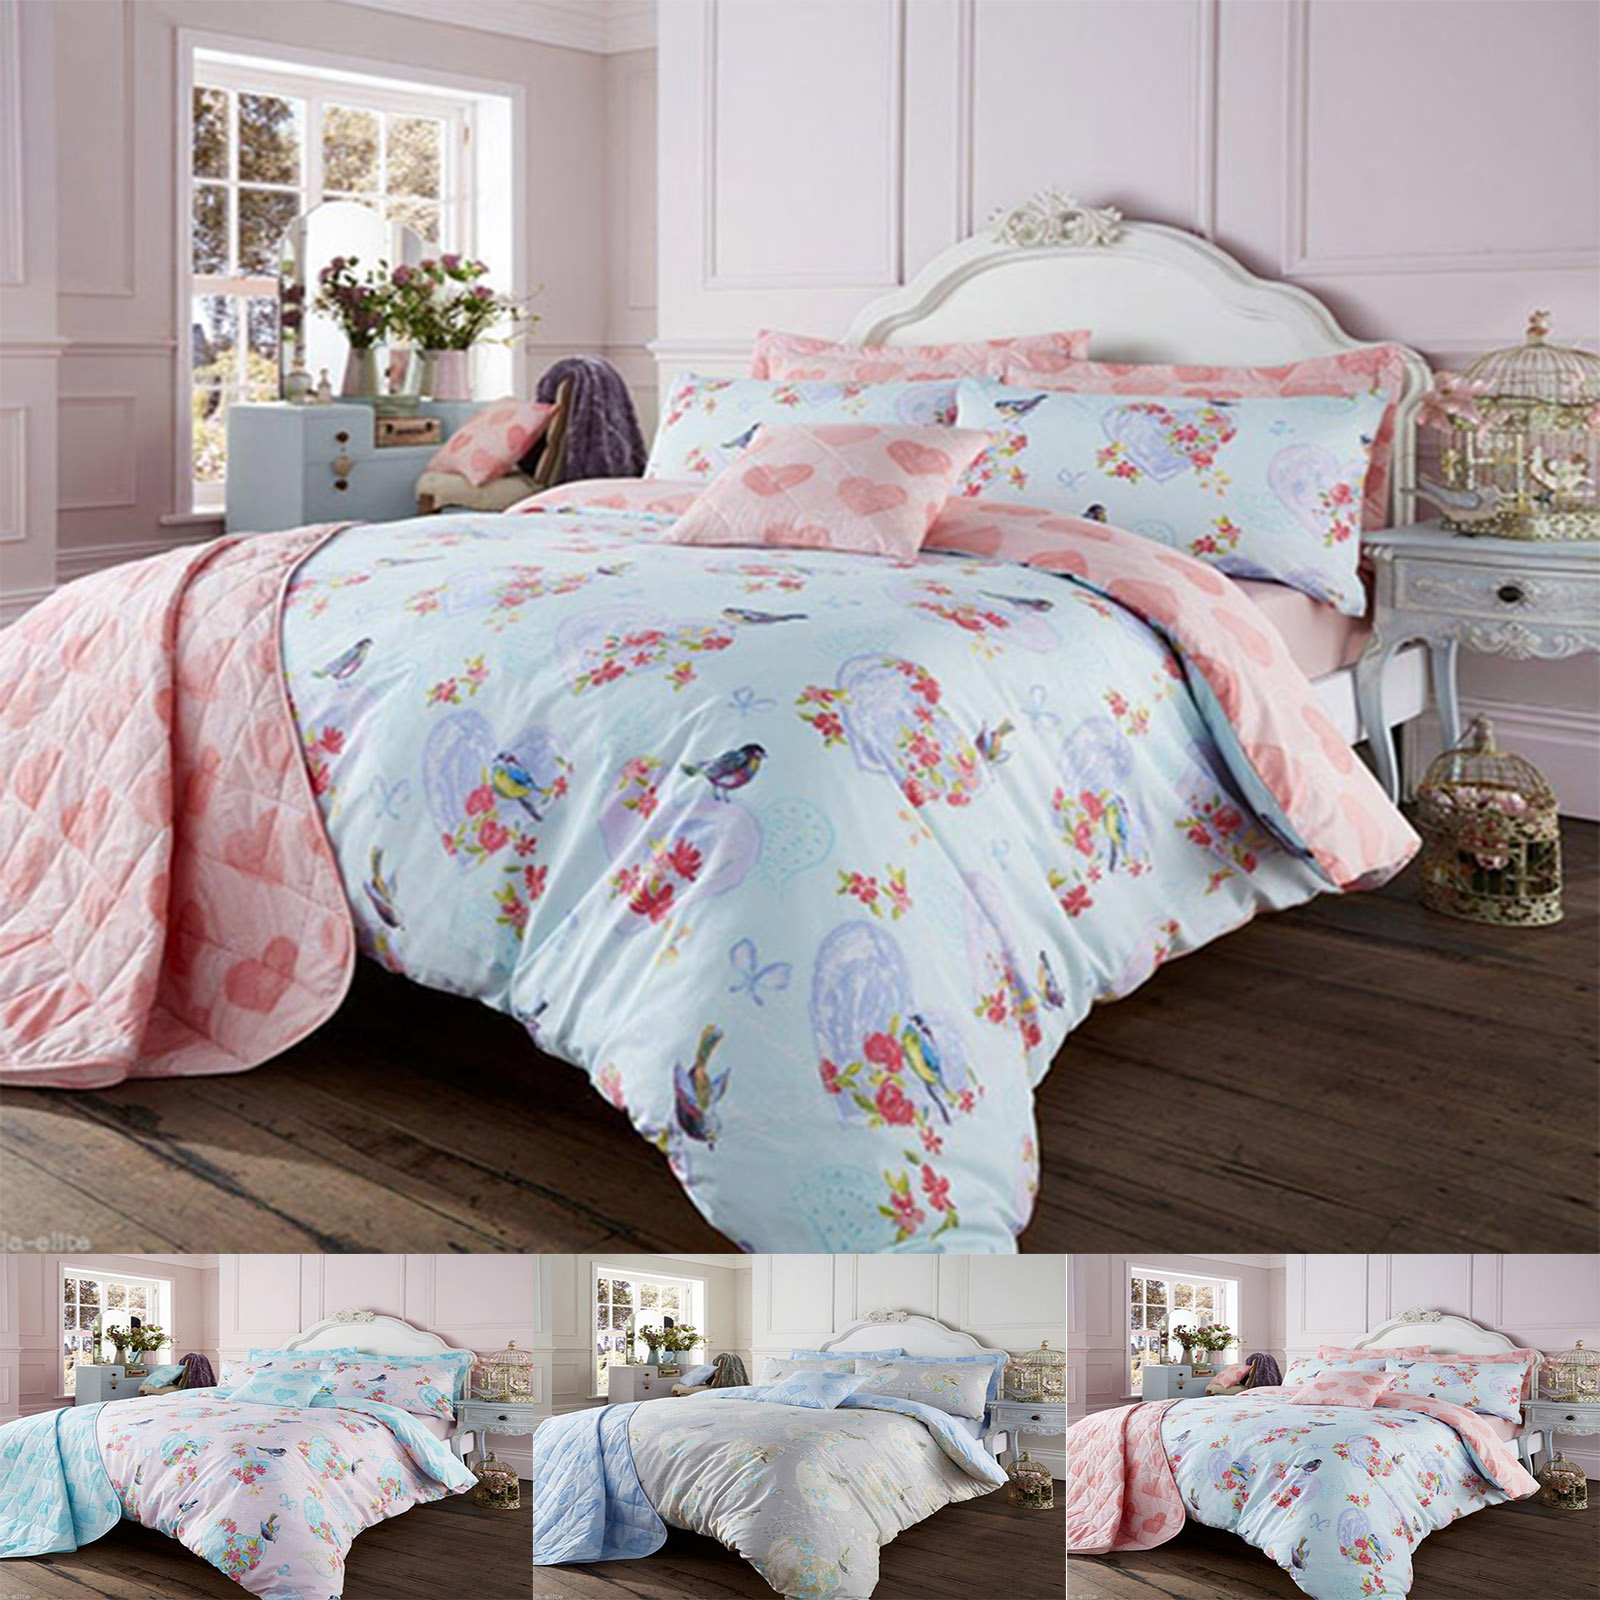 bed product duvet company sets duck bird flying cotton egg design natural donna wilson bedding